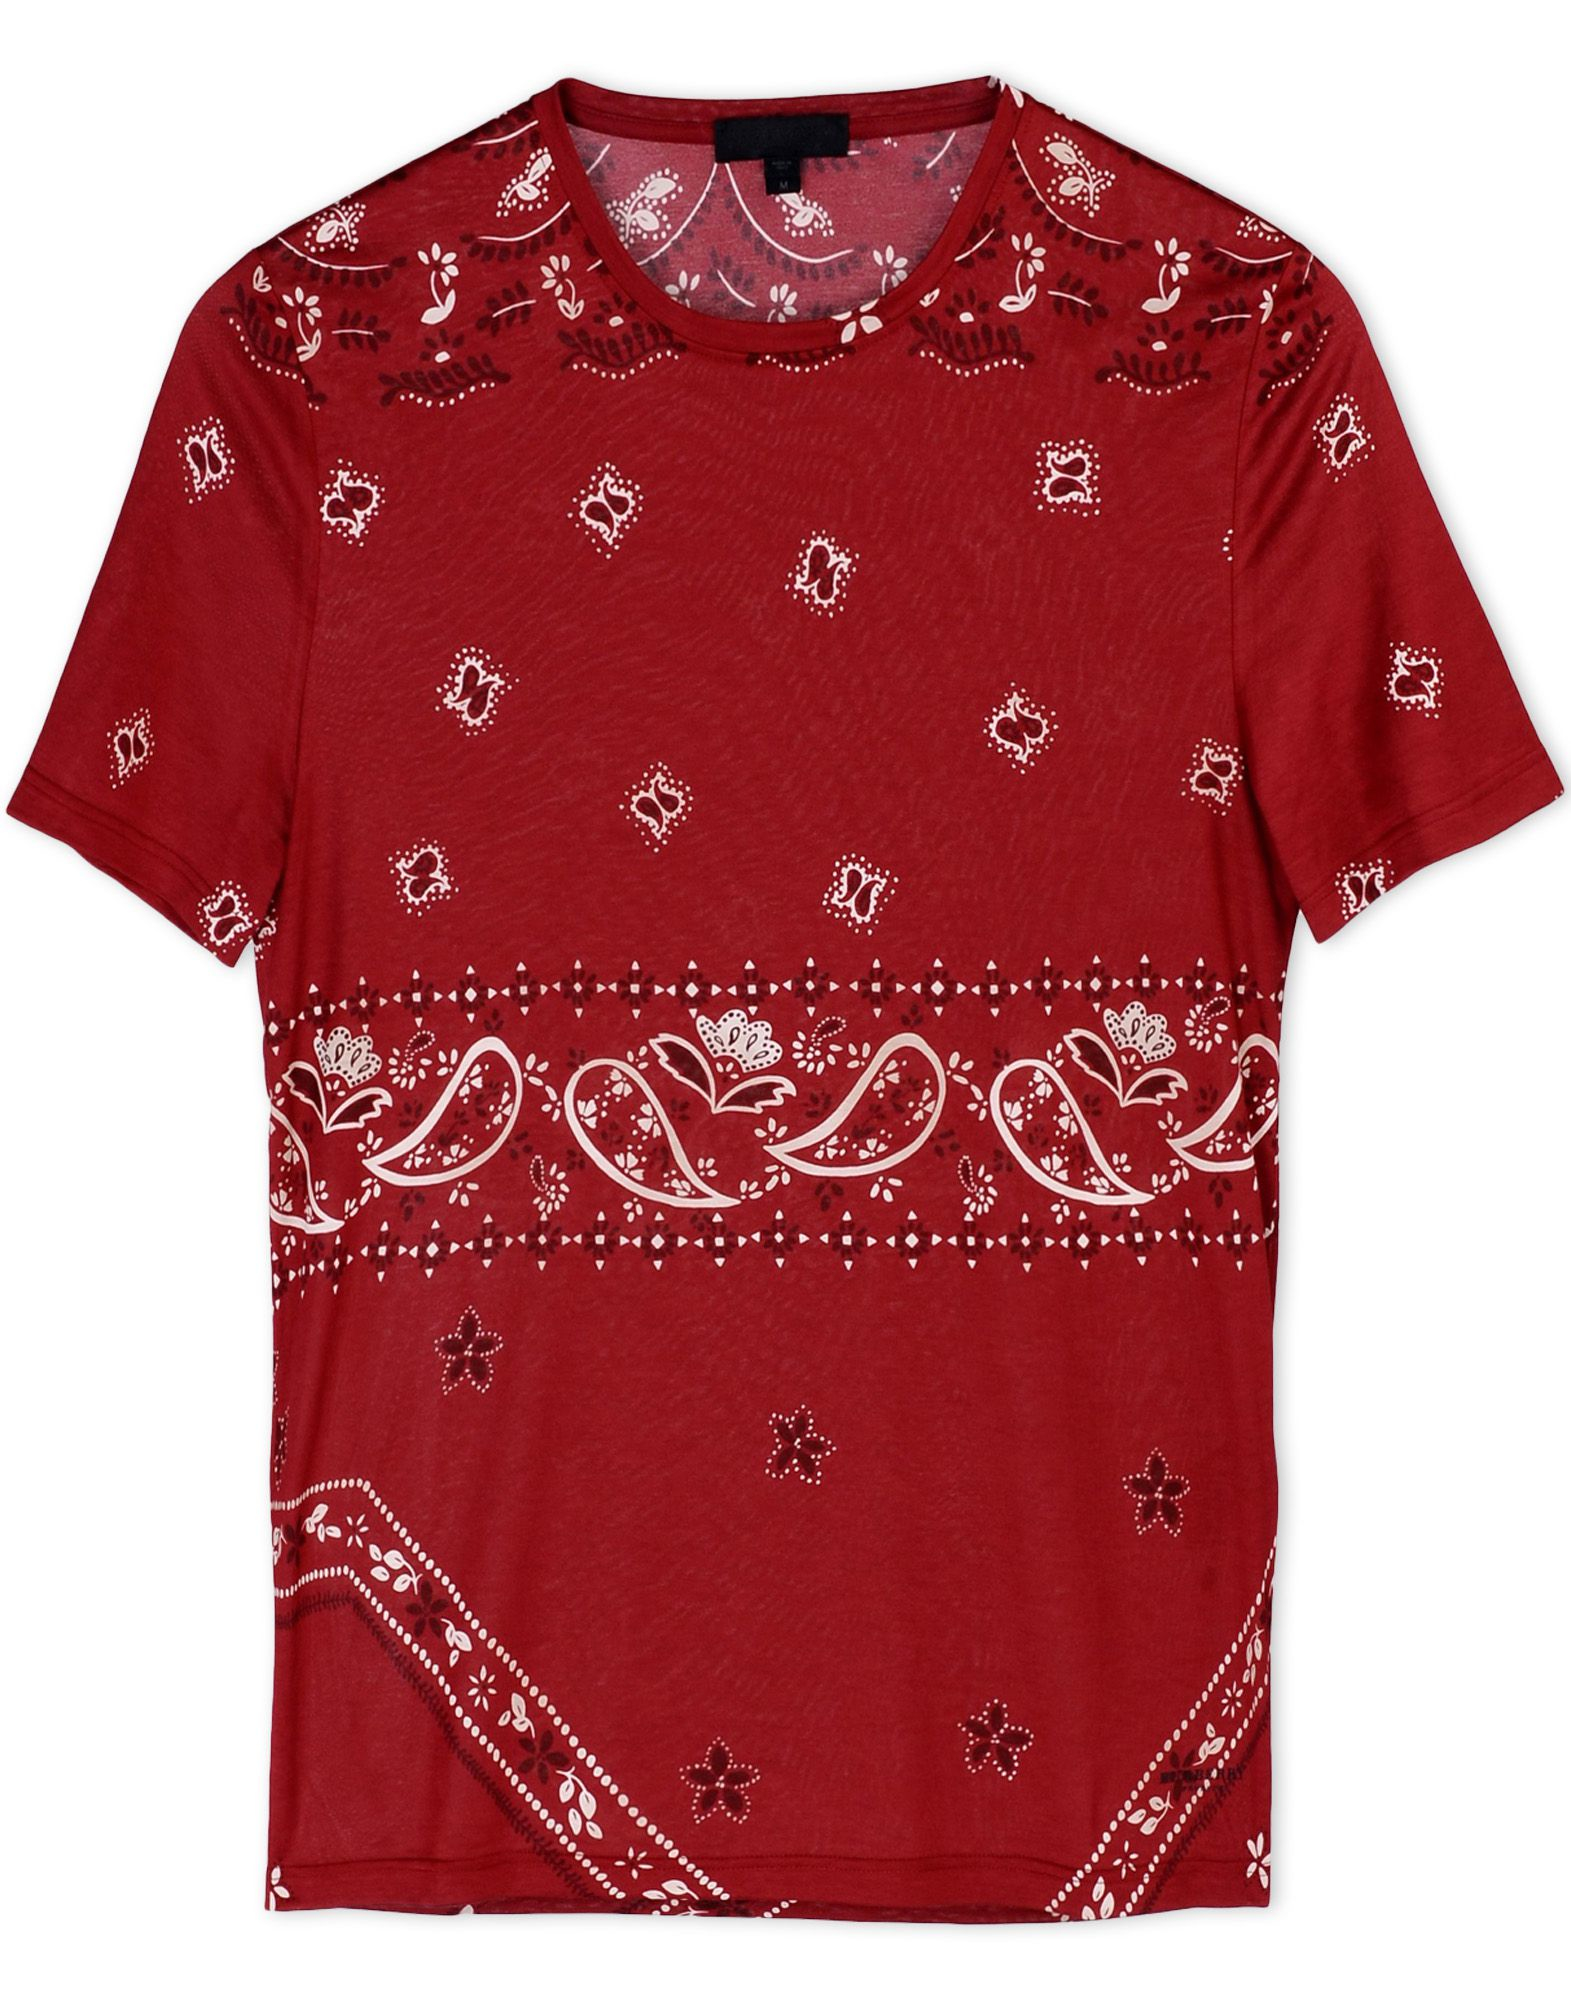 burberry prorsum short sleeve t shirt in red for men. Black Bedroom Furniture Sets. Home Design Ideas